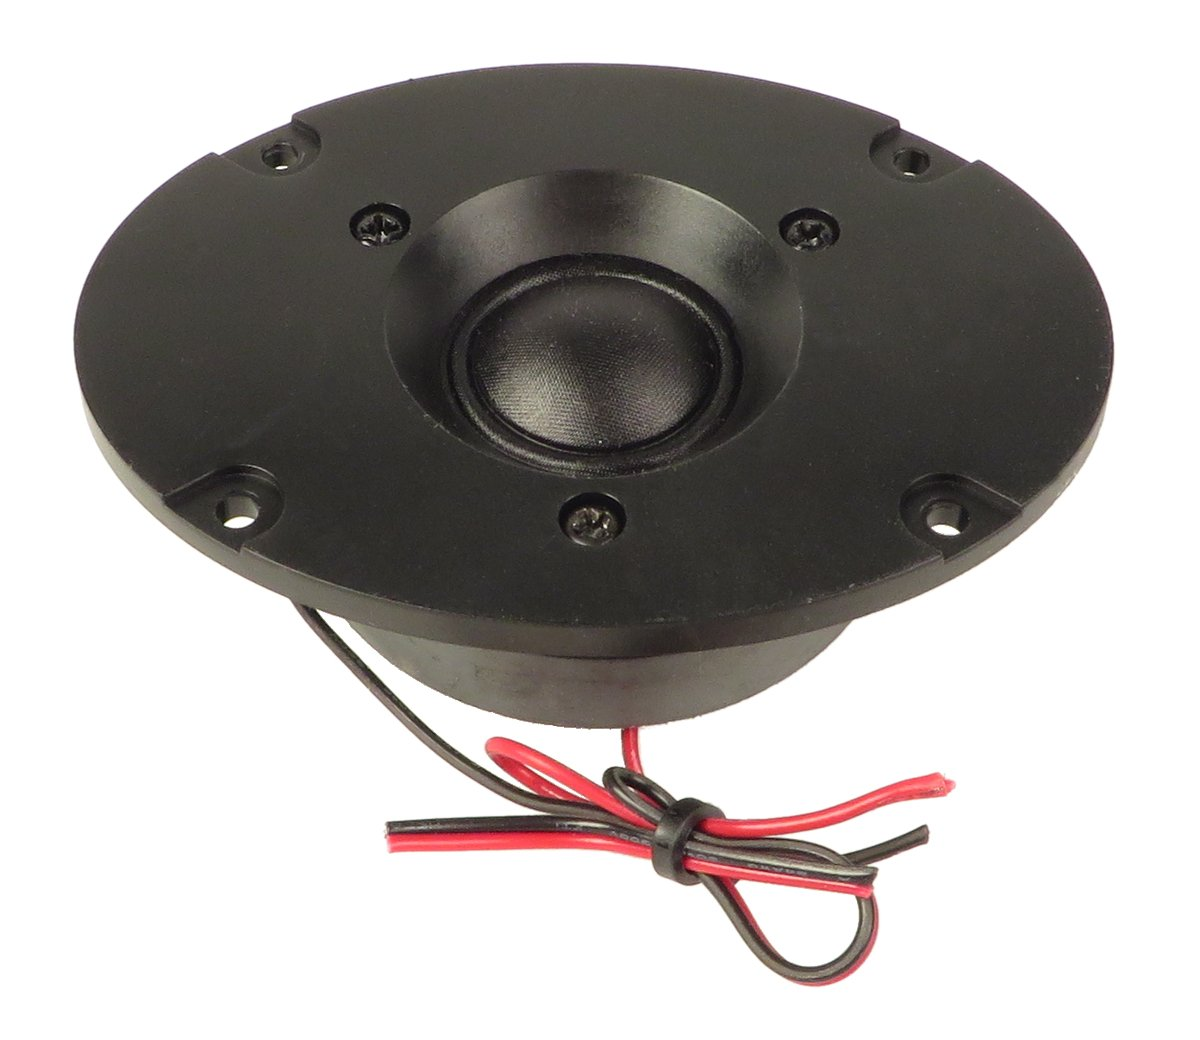 Tweeter Assembly for XP106w